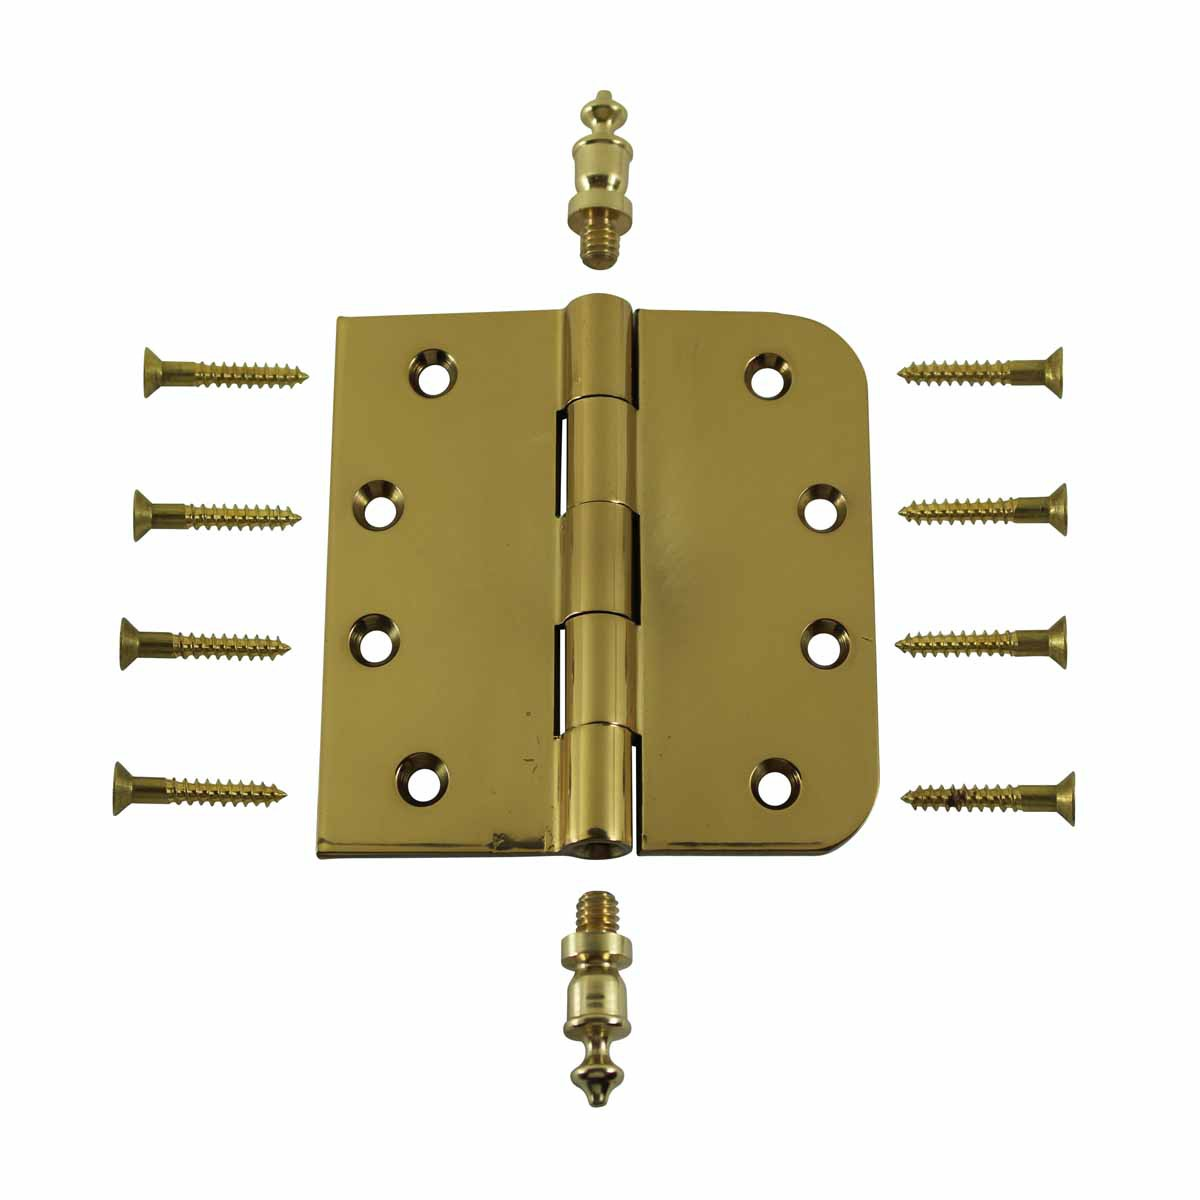 Bright Solid Brass Door Hinge 4 Urn Tip Door Hinges Door Hinge